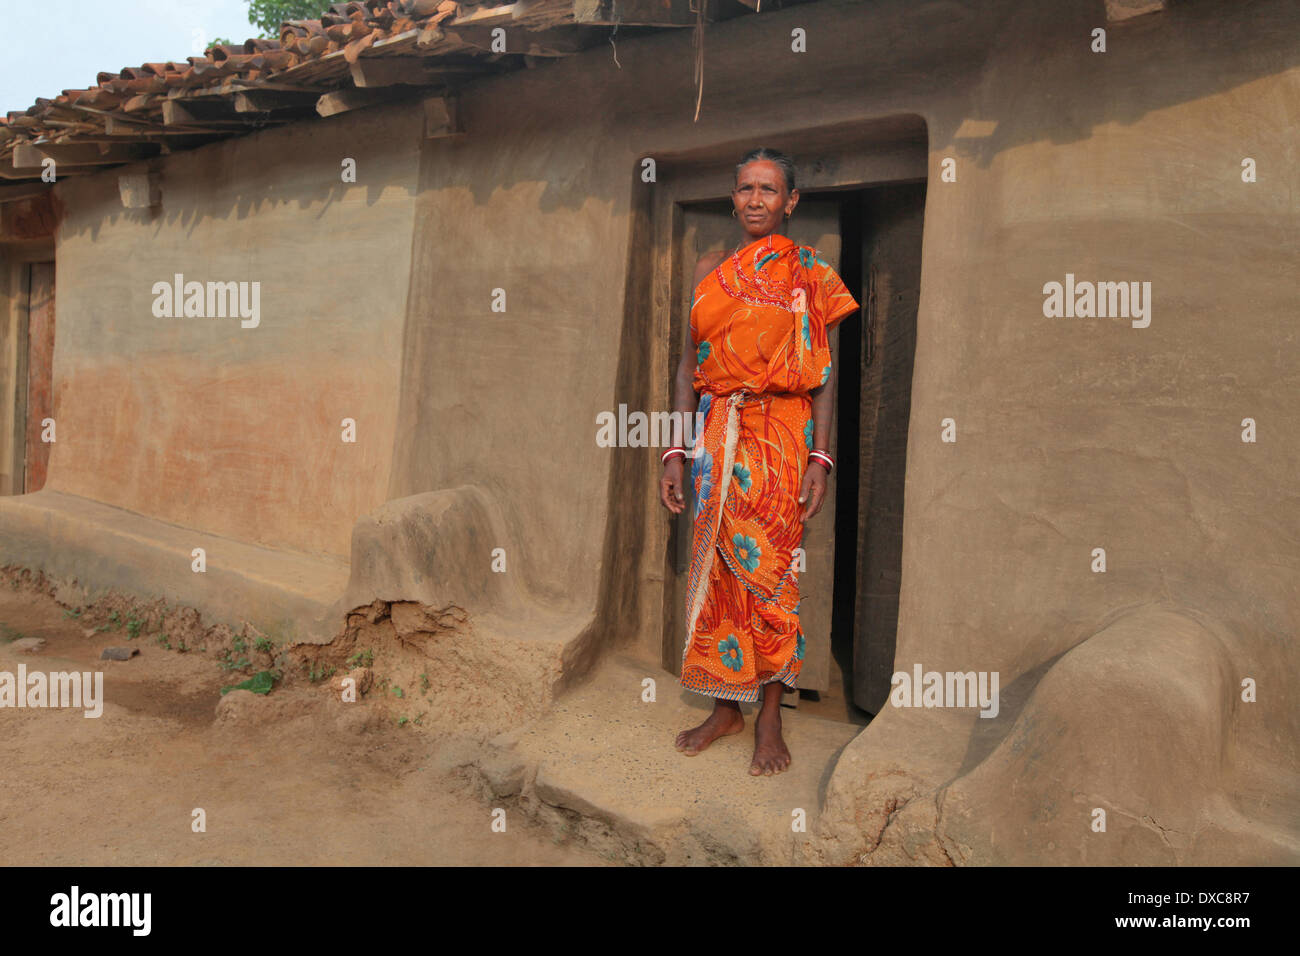 Woman in red sari standing in front of her mud house entrance. santhal tribe, Hardhekitand village, Jharkhand, India - Stock Image